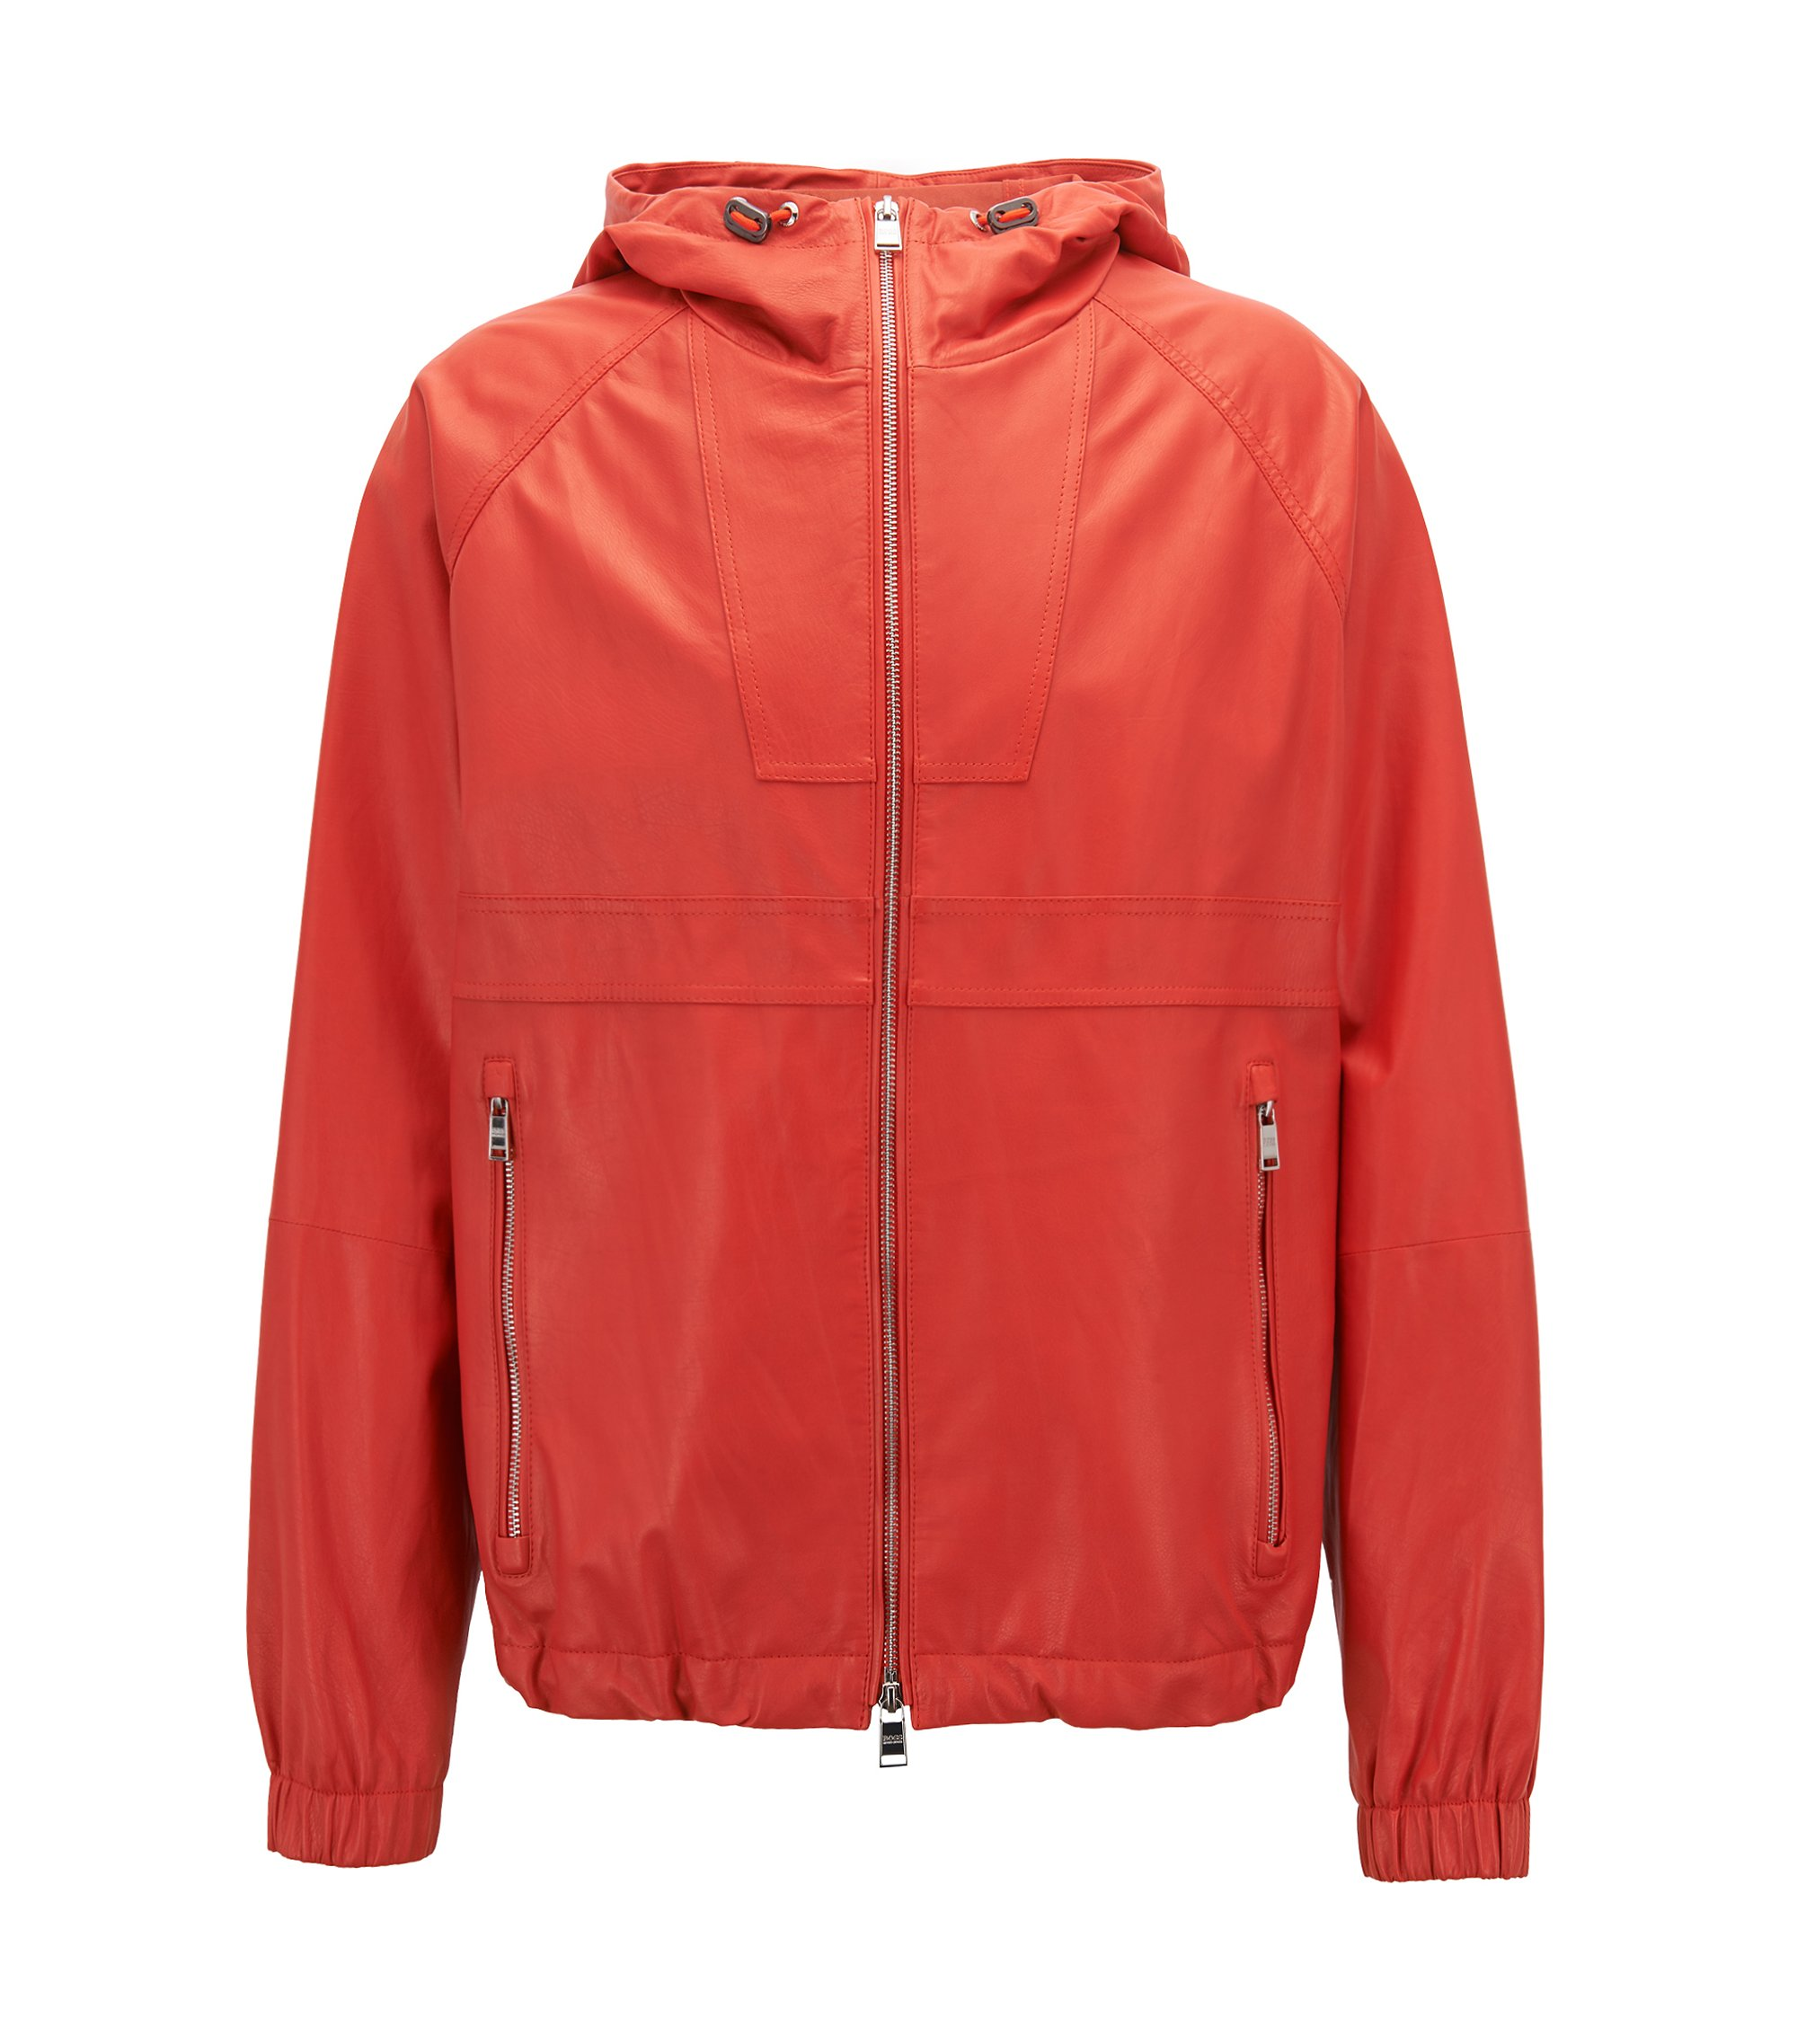 Lightweight Nappa Leather Windbreaker Jacket | 'Carbello', Orange